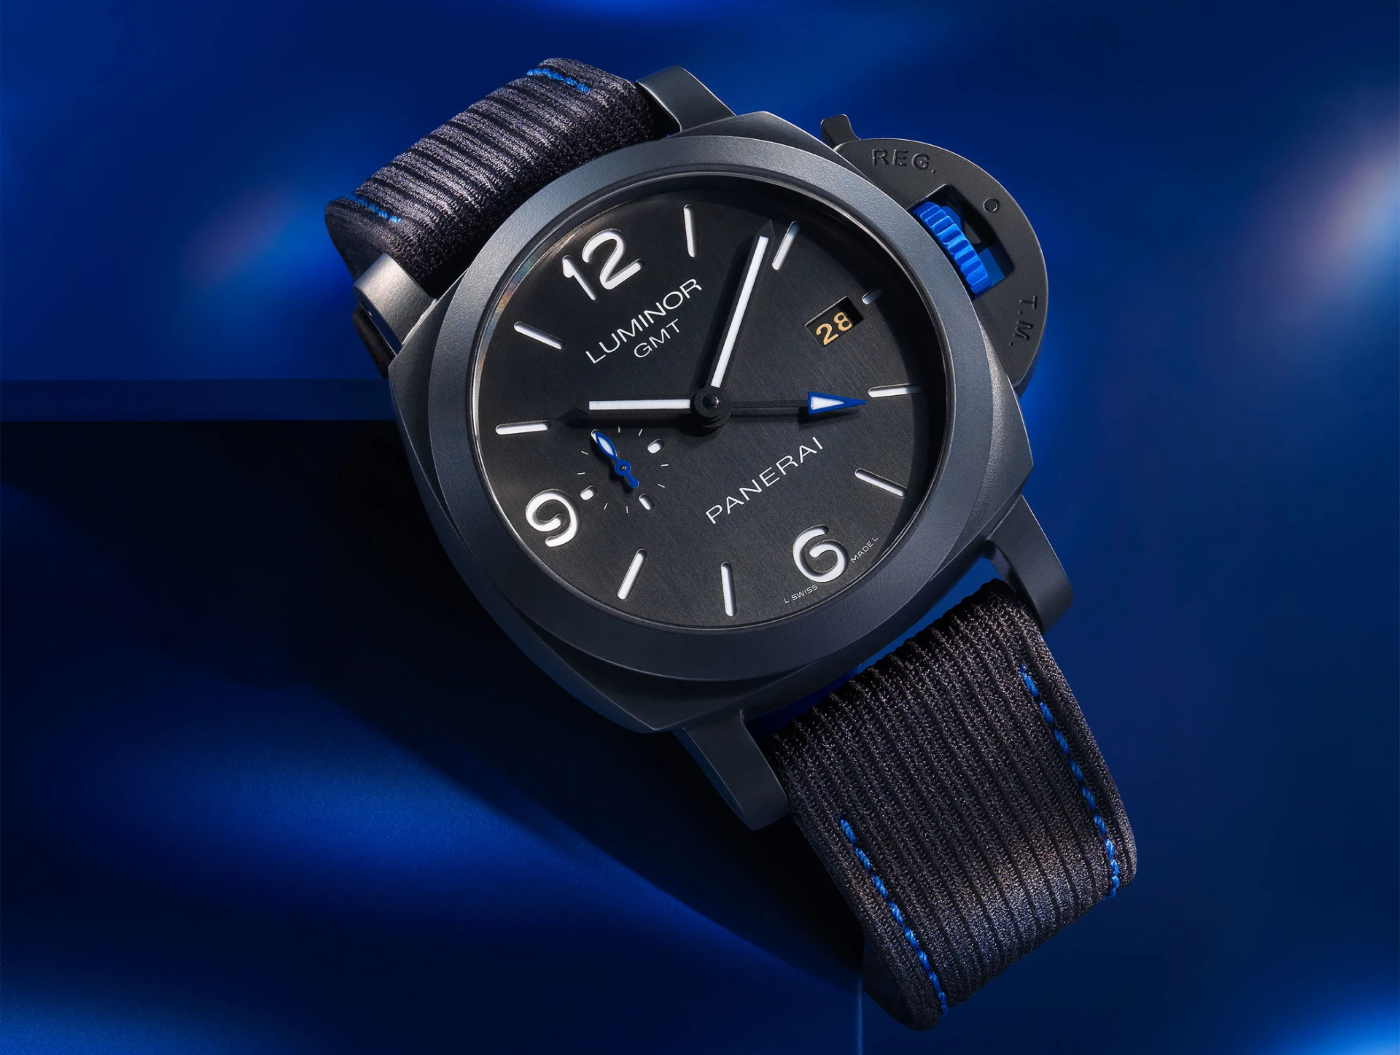 Panerai_luminor_gmt_Bucherer_blue_side-_Europa_Star_watch_magazine_2020-